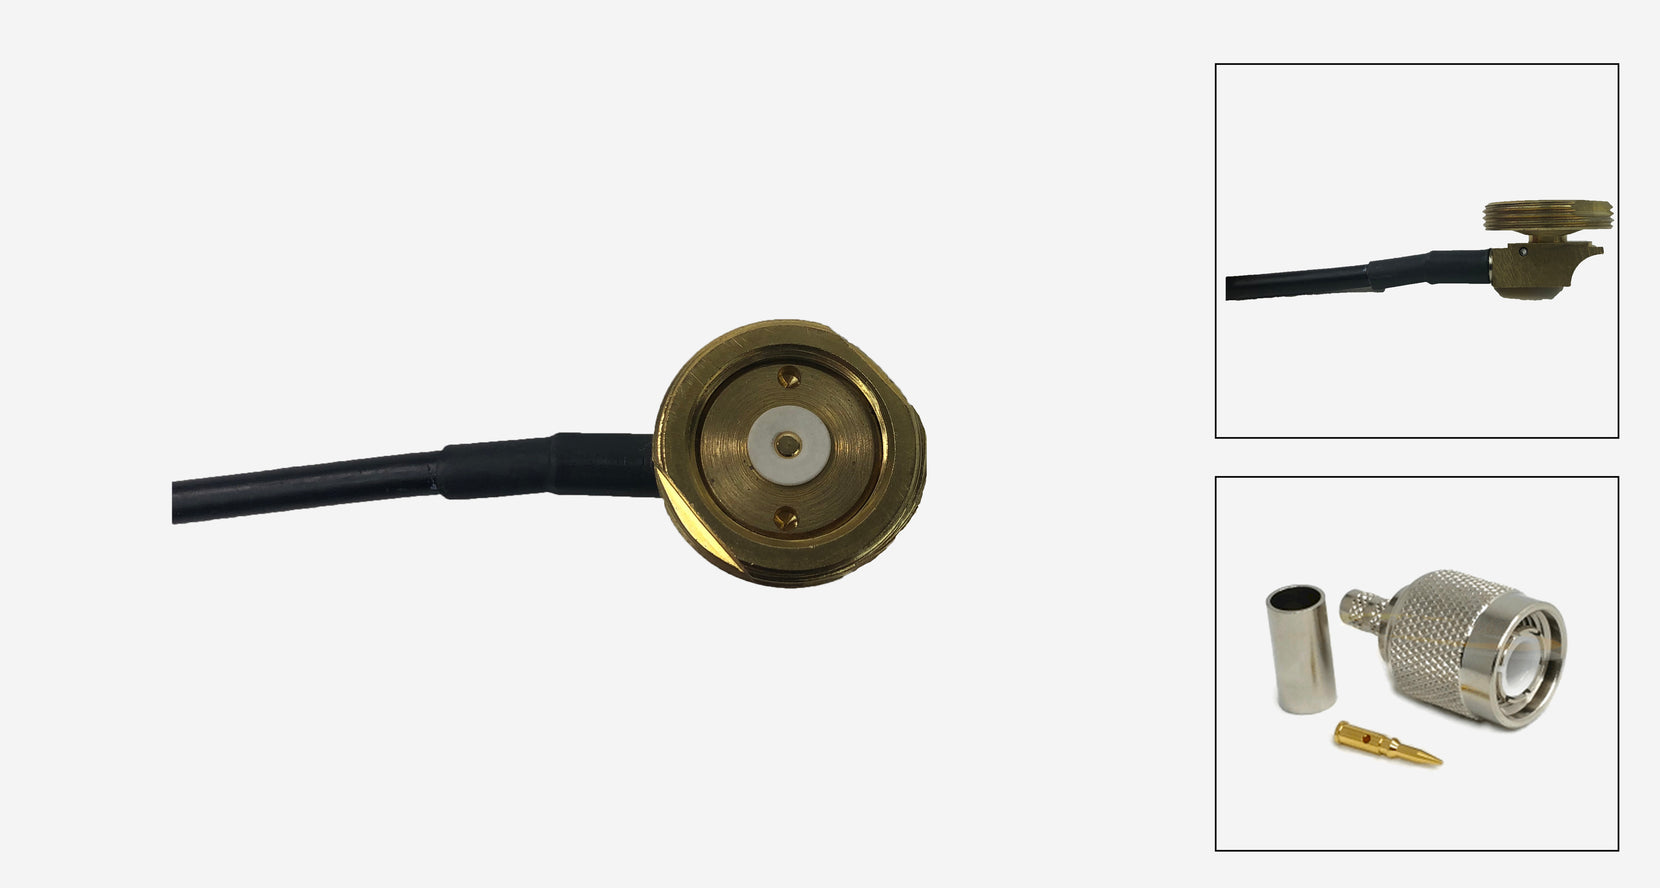 3/4 Brass Thru-Hole NMO Mount with 17 Ft. RG-58/U Cable and TNC Male Connector